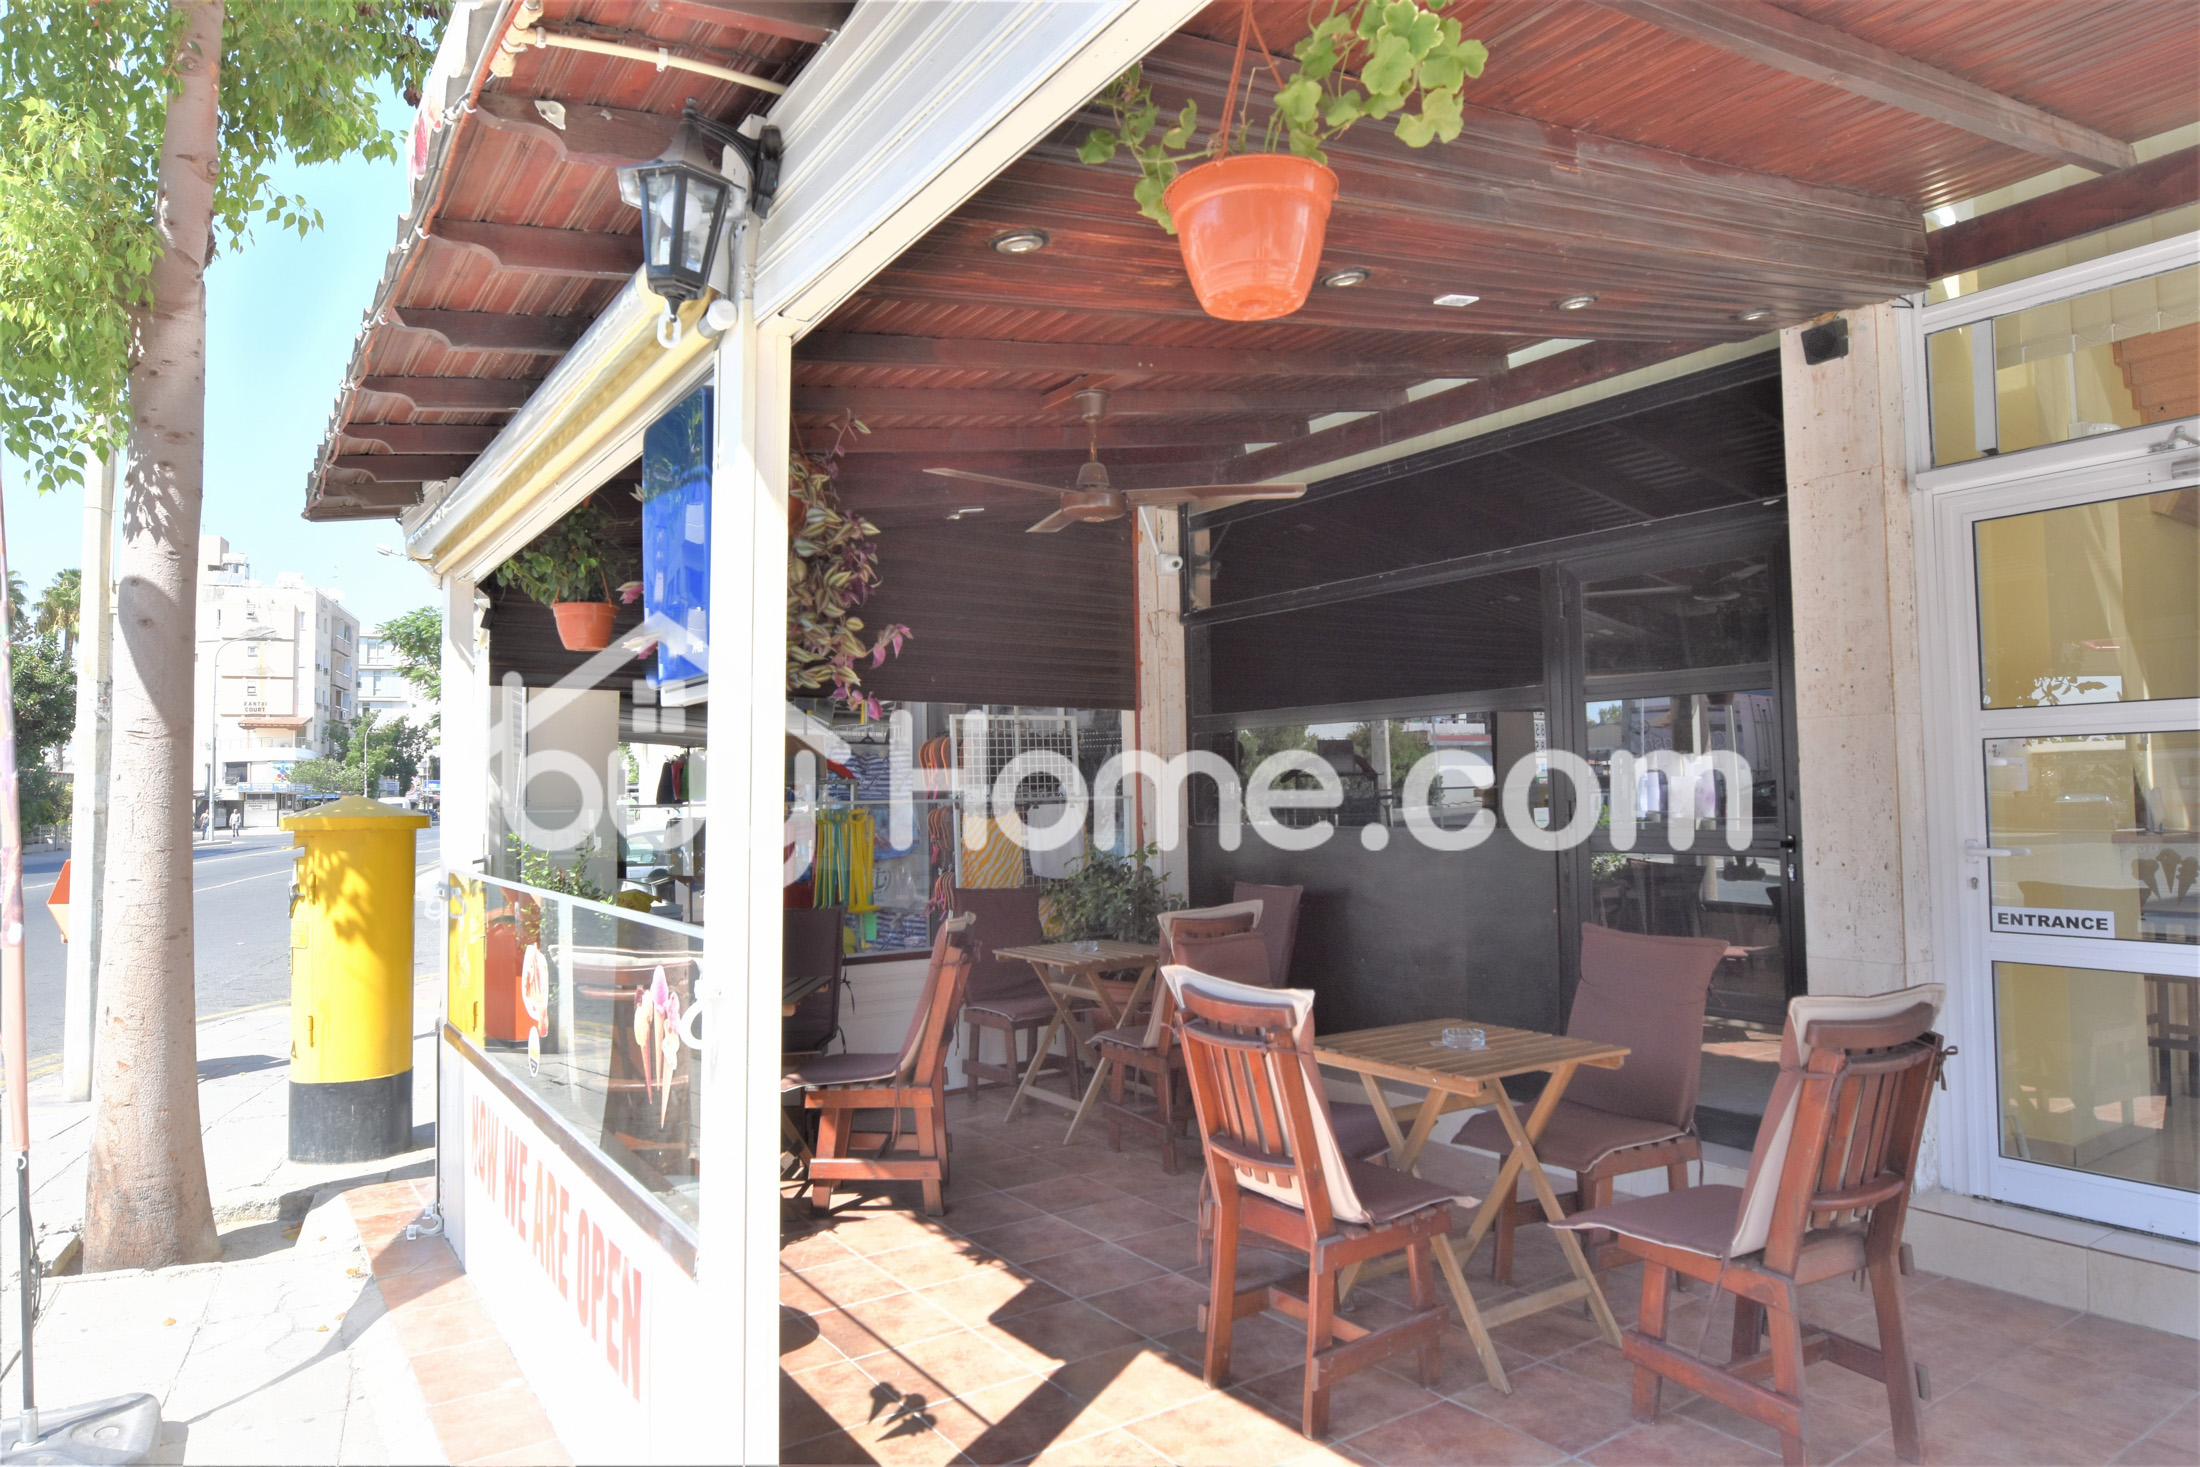 Shop On Busy Commercial Road | BuyHome